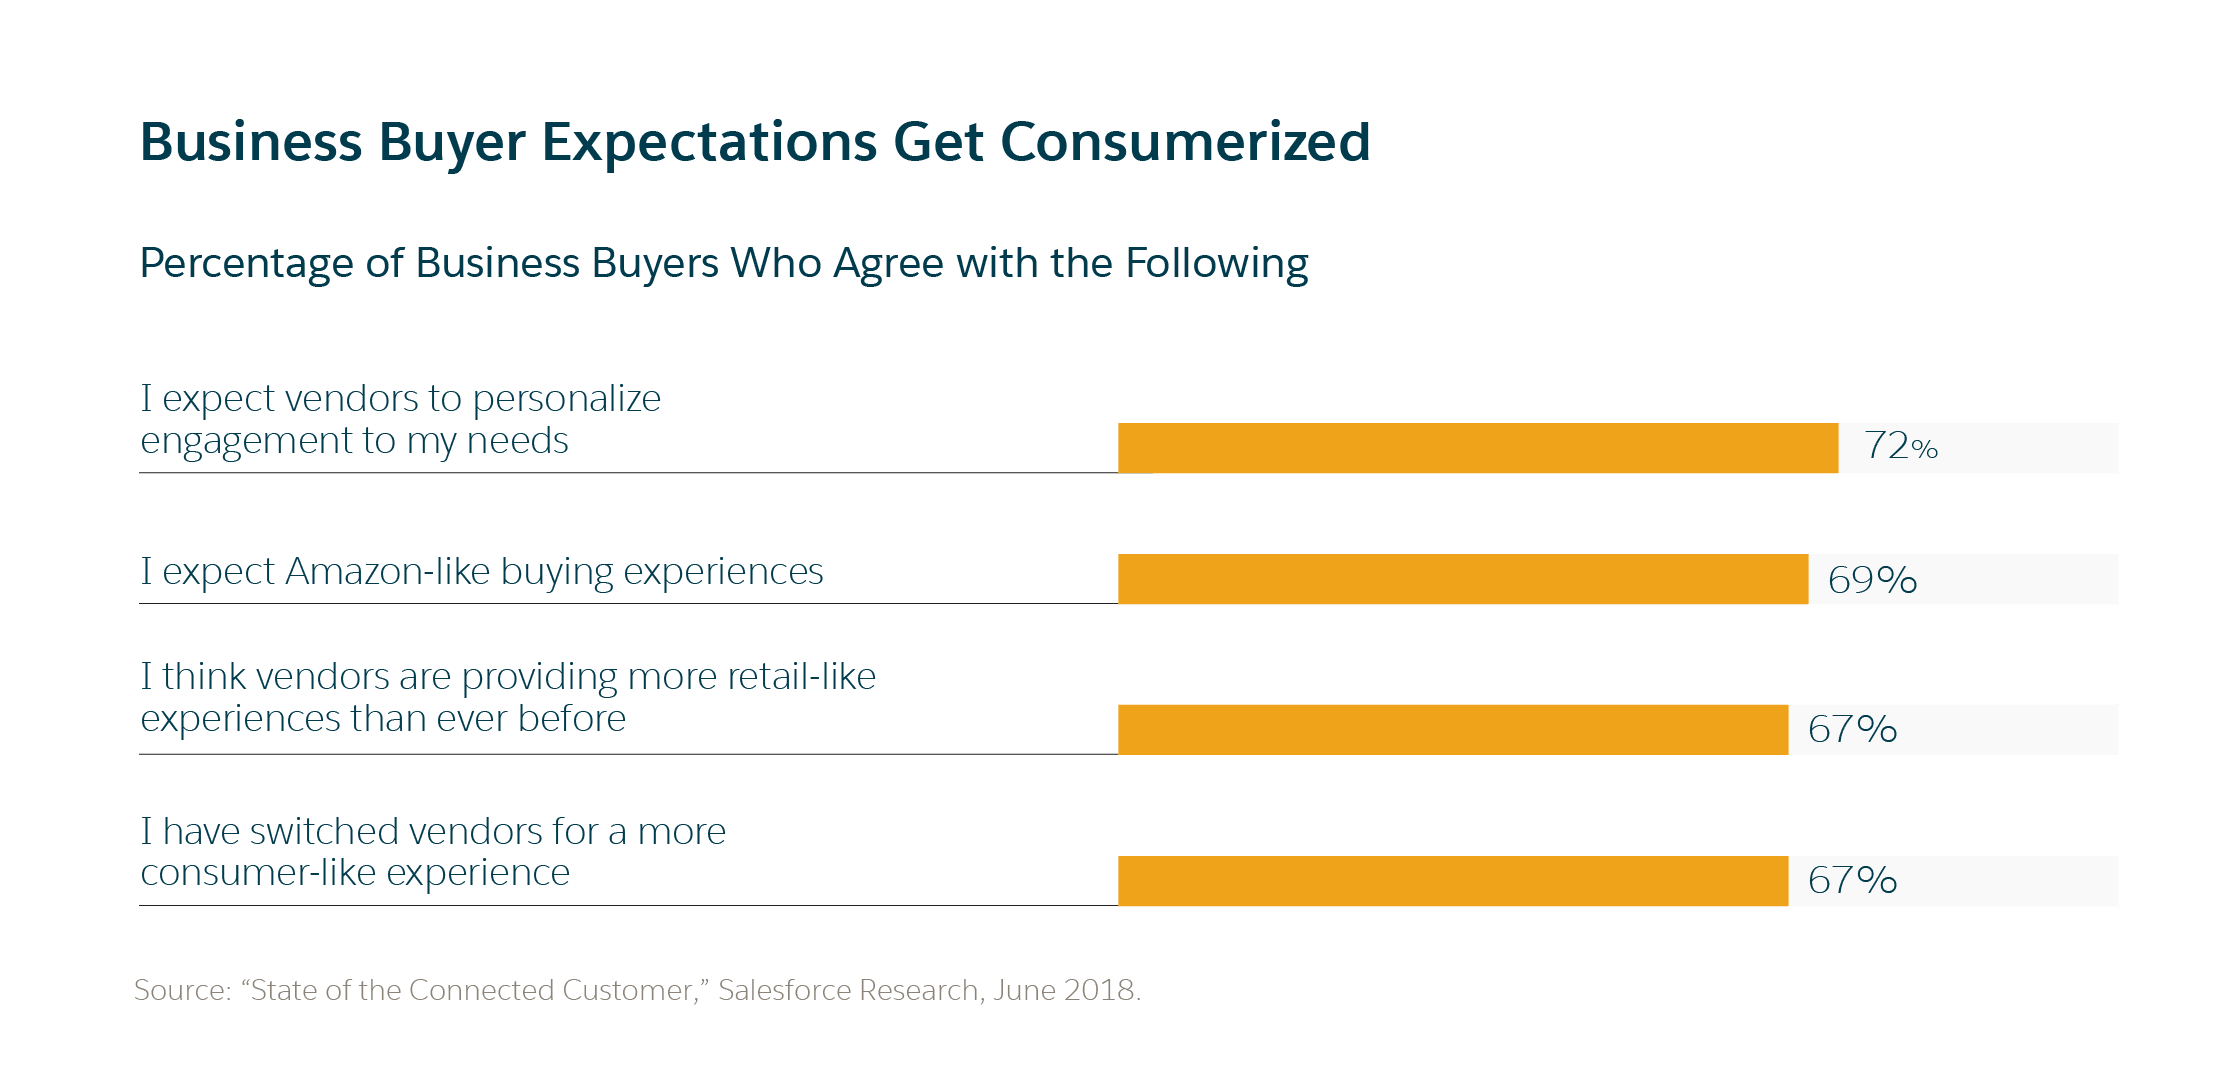 Today's B2B customers place a premium on personalization